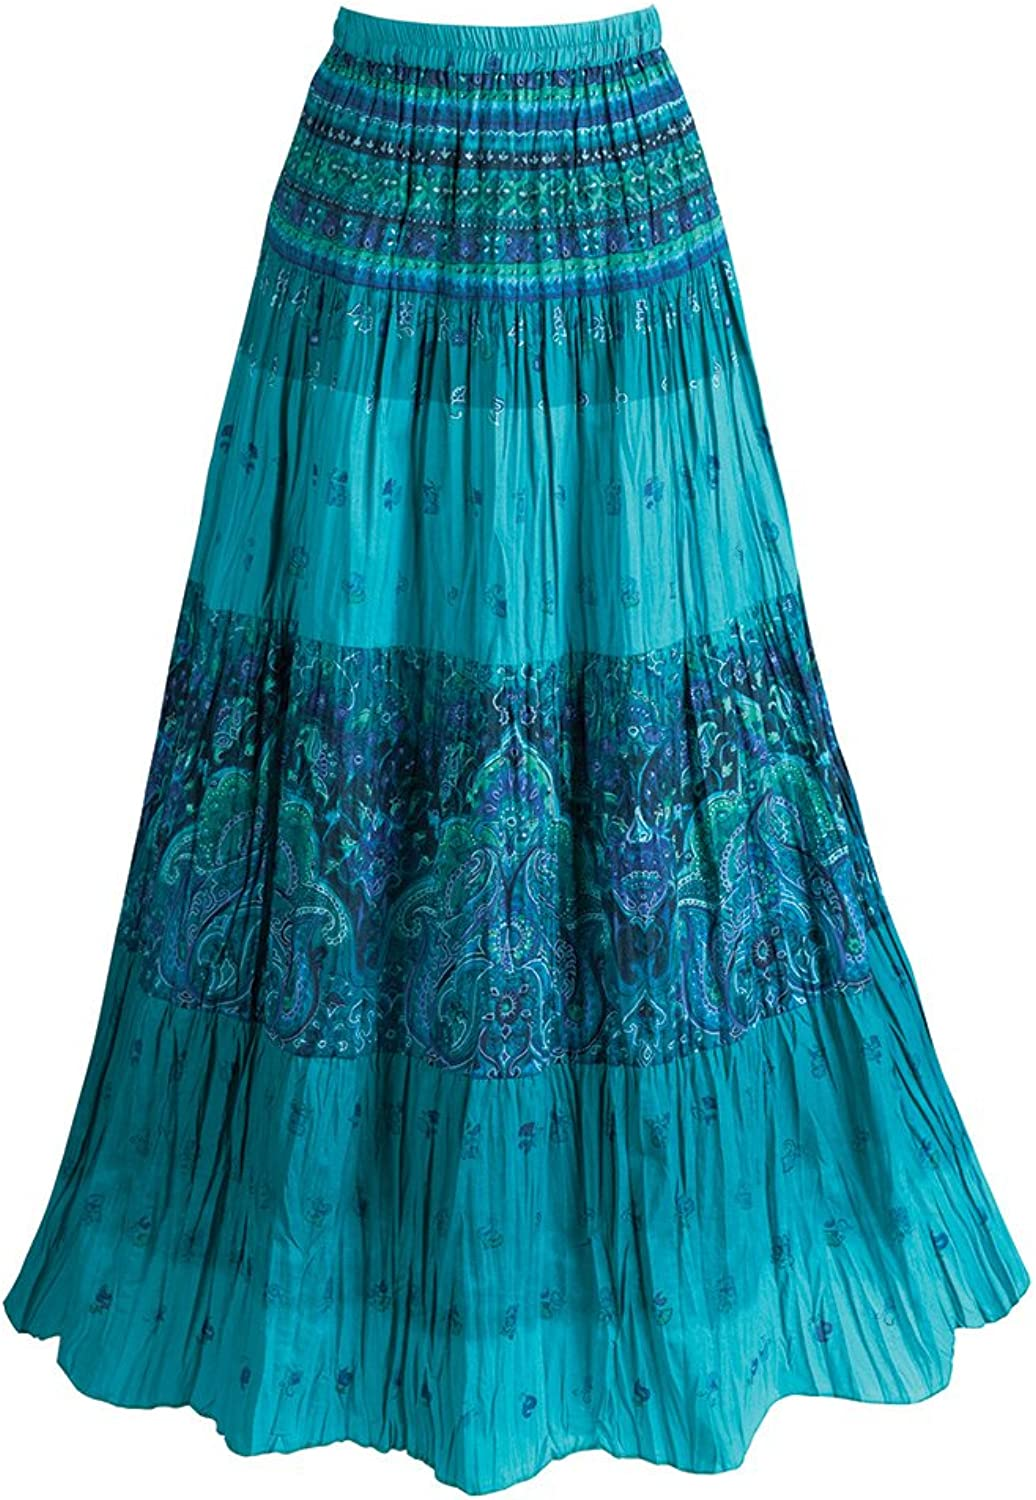 CATALOG CLASSICS Women's Long Peasant Skirt  Tiered Broom Style in Caribbean bluees